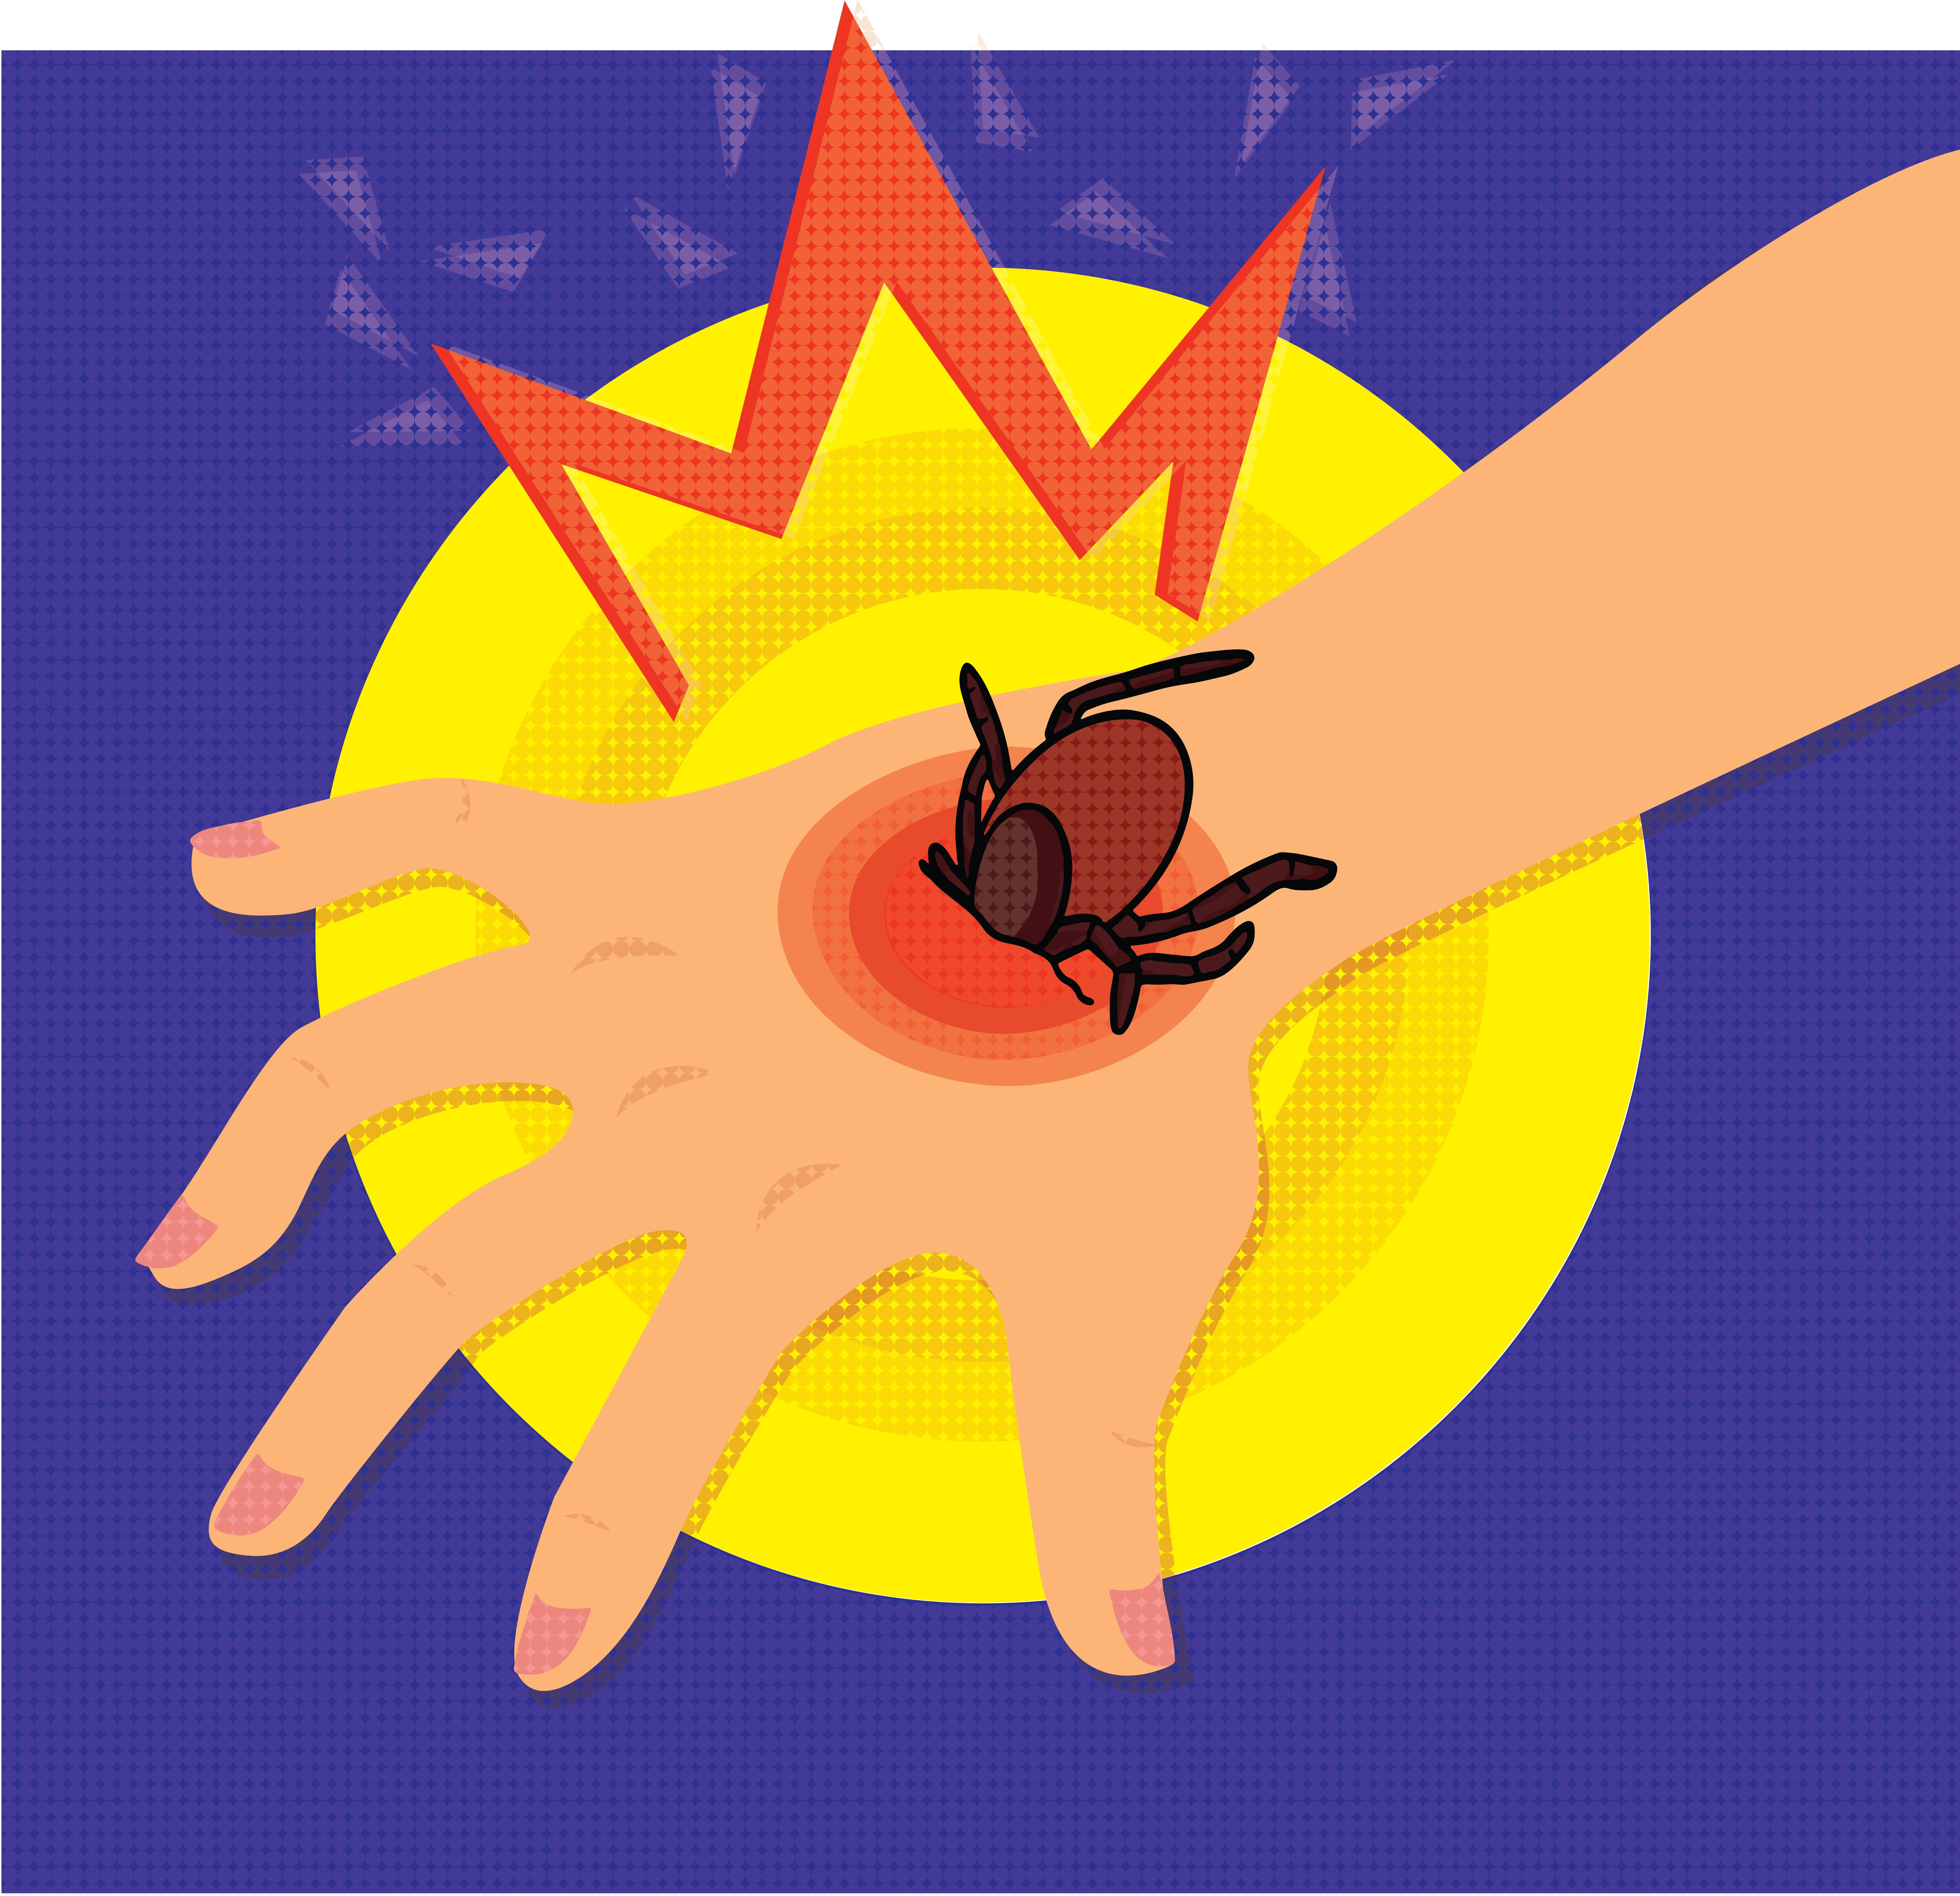 Lyme disease: is a solution on the way?